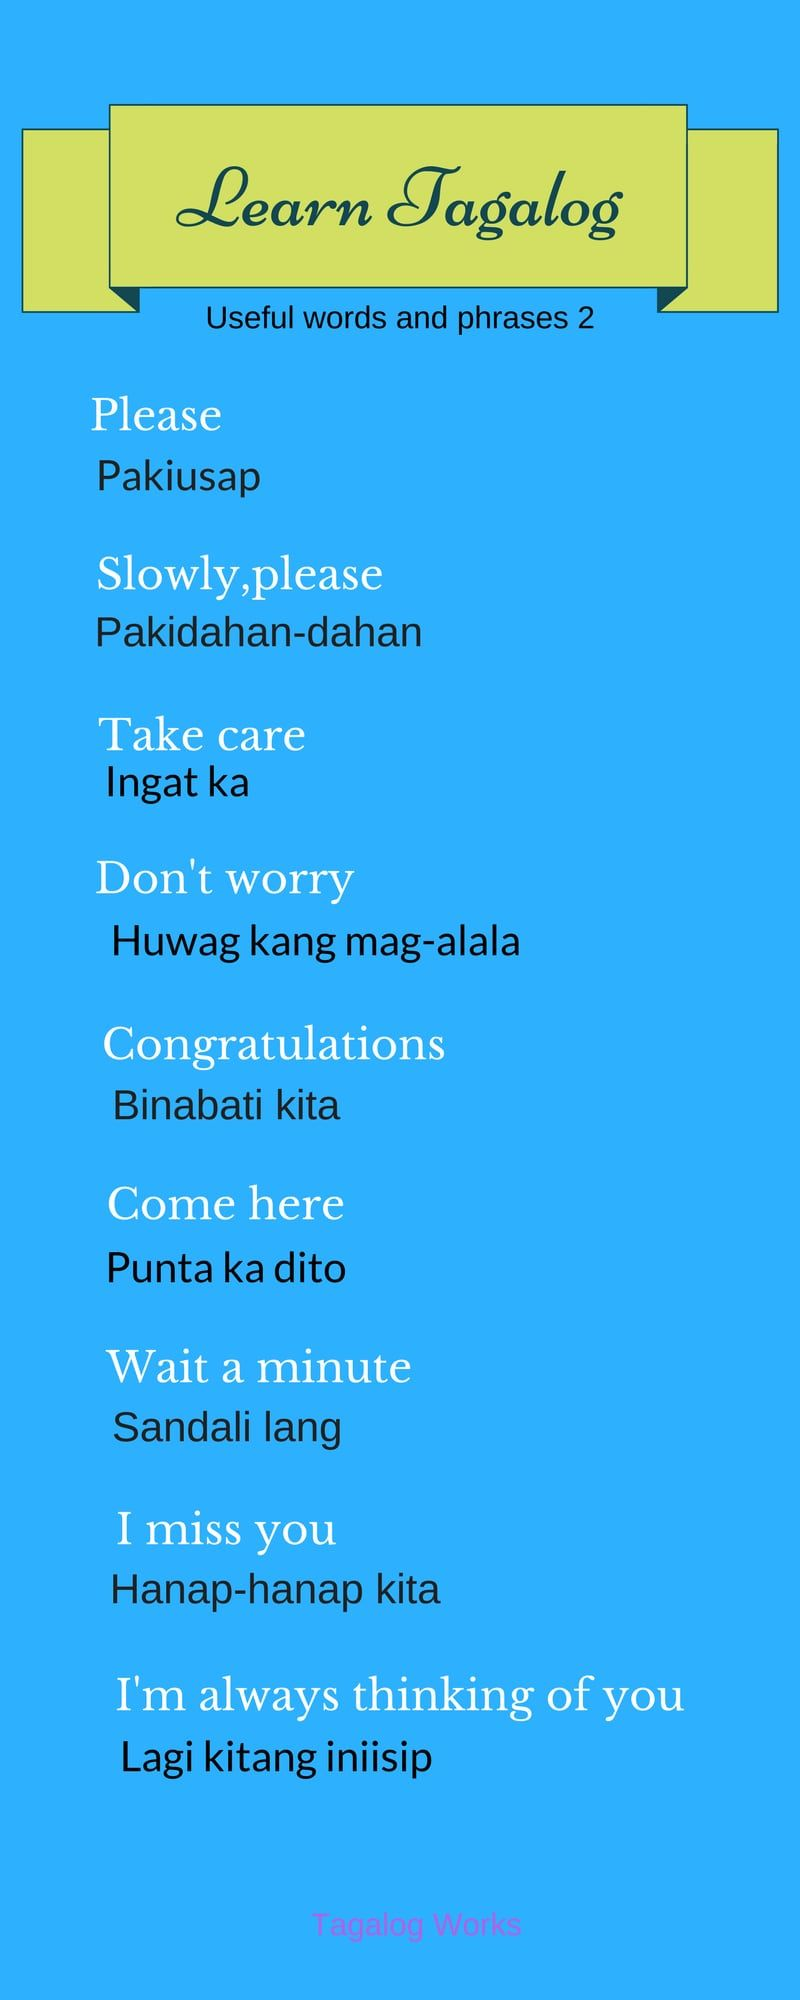 Pin By Belle Adler On Foreign Language Pinterest Tagalog